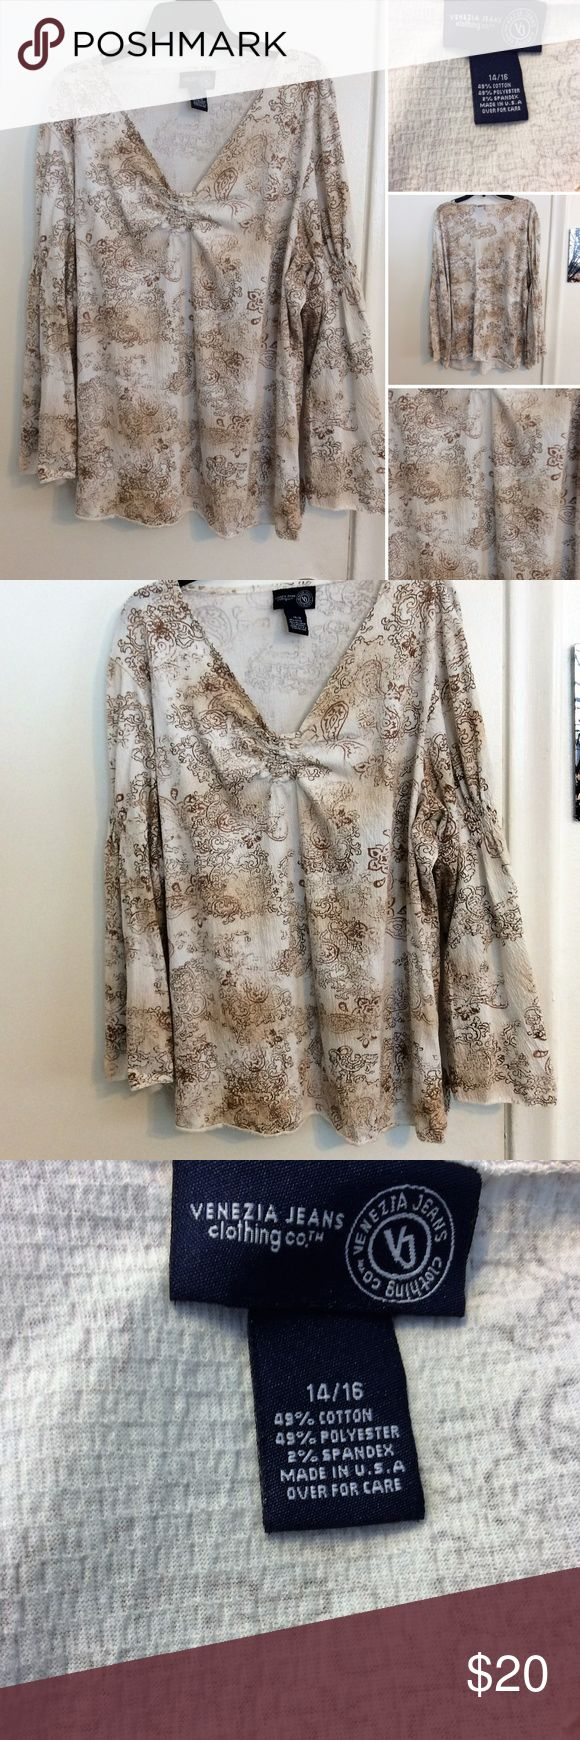 venezia jeans plus size top this Venezia Jeans plus size top is in excellent new like condition. It has very neutral colors with a pretty pattern print to it. This is a size 14/16 and is a cotton blend Venezia Tops